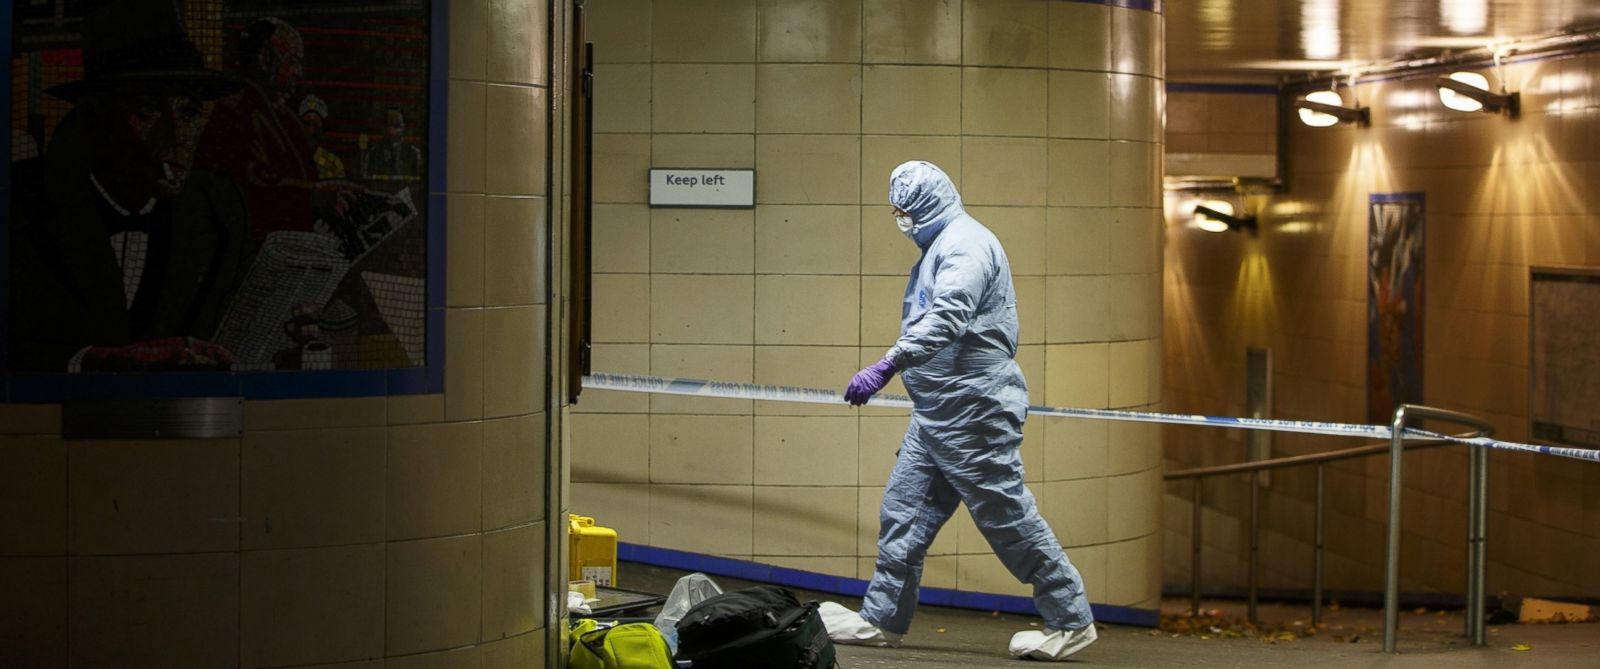 PHOTO: LONDON, UNITED KINGDOM - DECEMBER 05: Police officers and crime scene investigators investigate a crime scene at Leytonstone tube station in east London, England, on December 05, 2015.